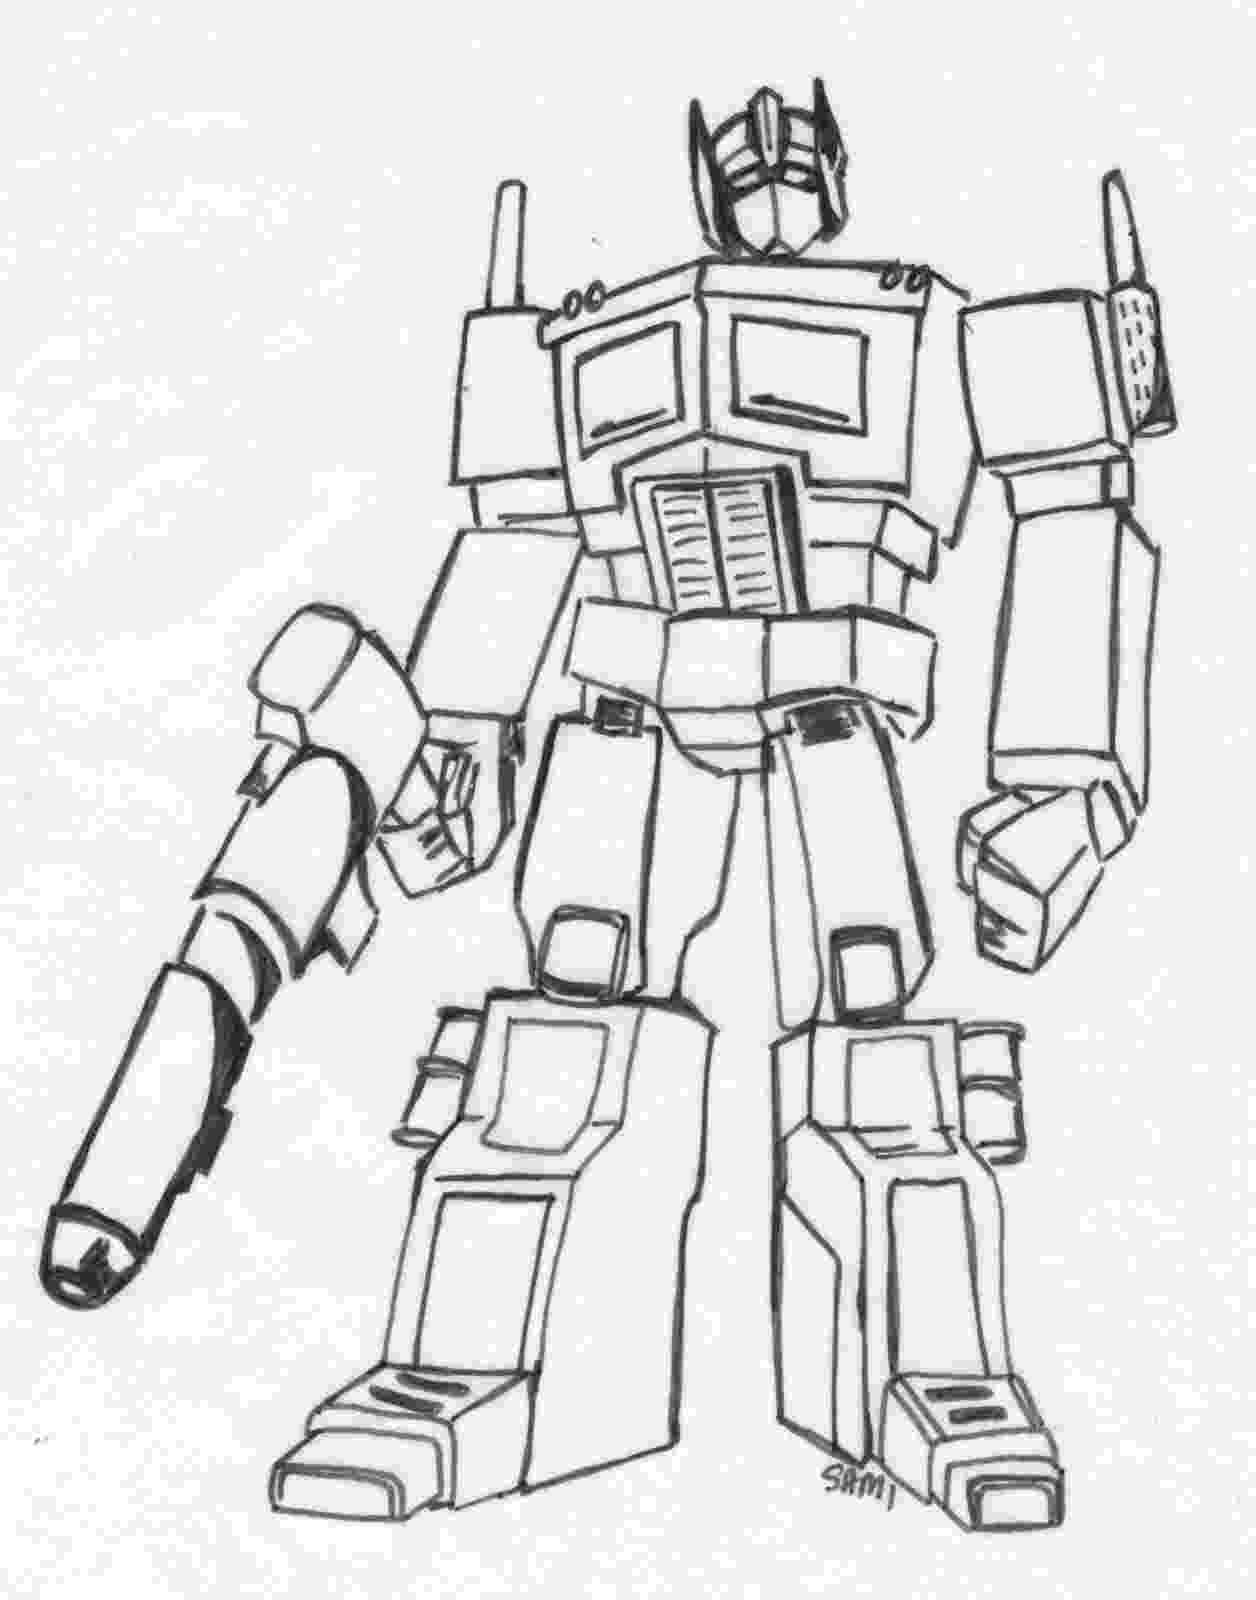 optimus prime coloring page optimus prime coloring pages to download and print for free prime optimus coloring page